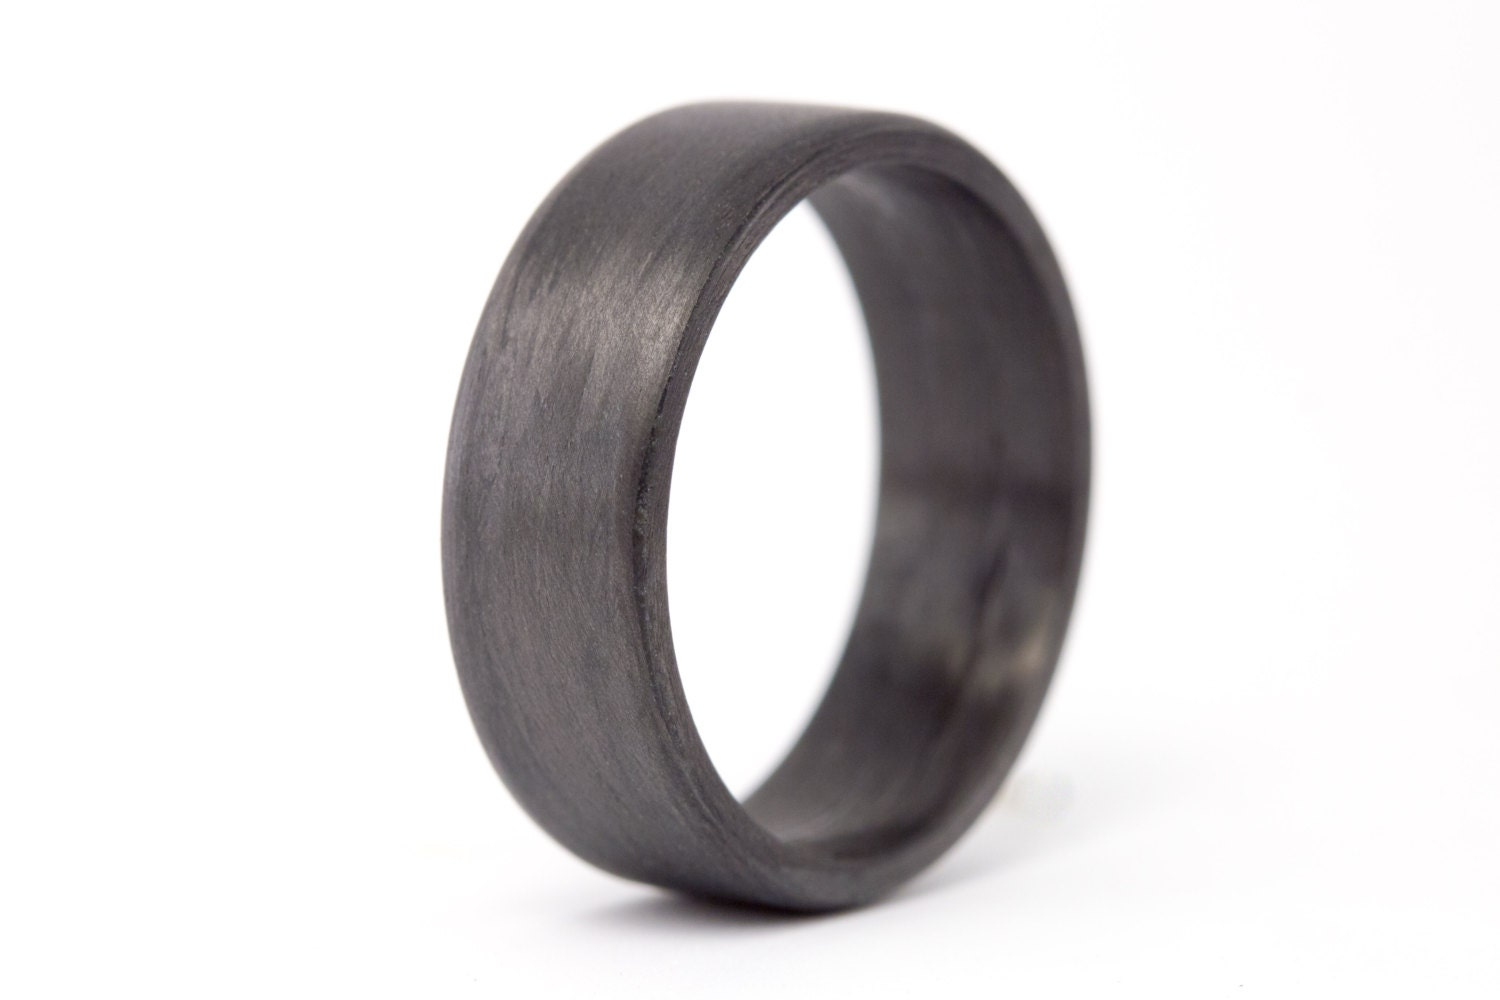 carbon fiber ring mud tire wedding ring Men s carbon fiber flat ring Unique and instrial black wedding band Water resistant very durable and hypoallergenic 7N